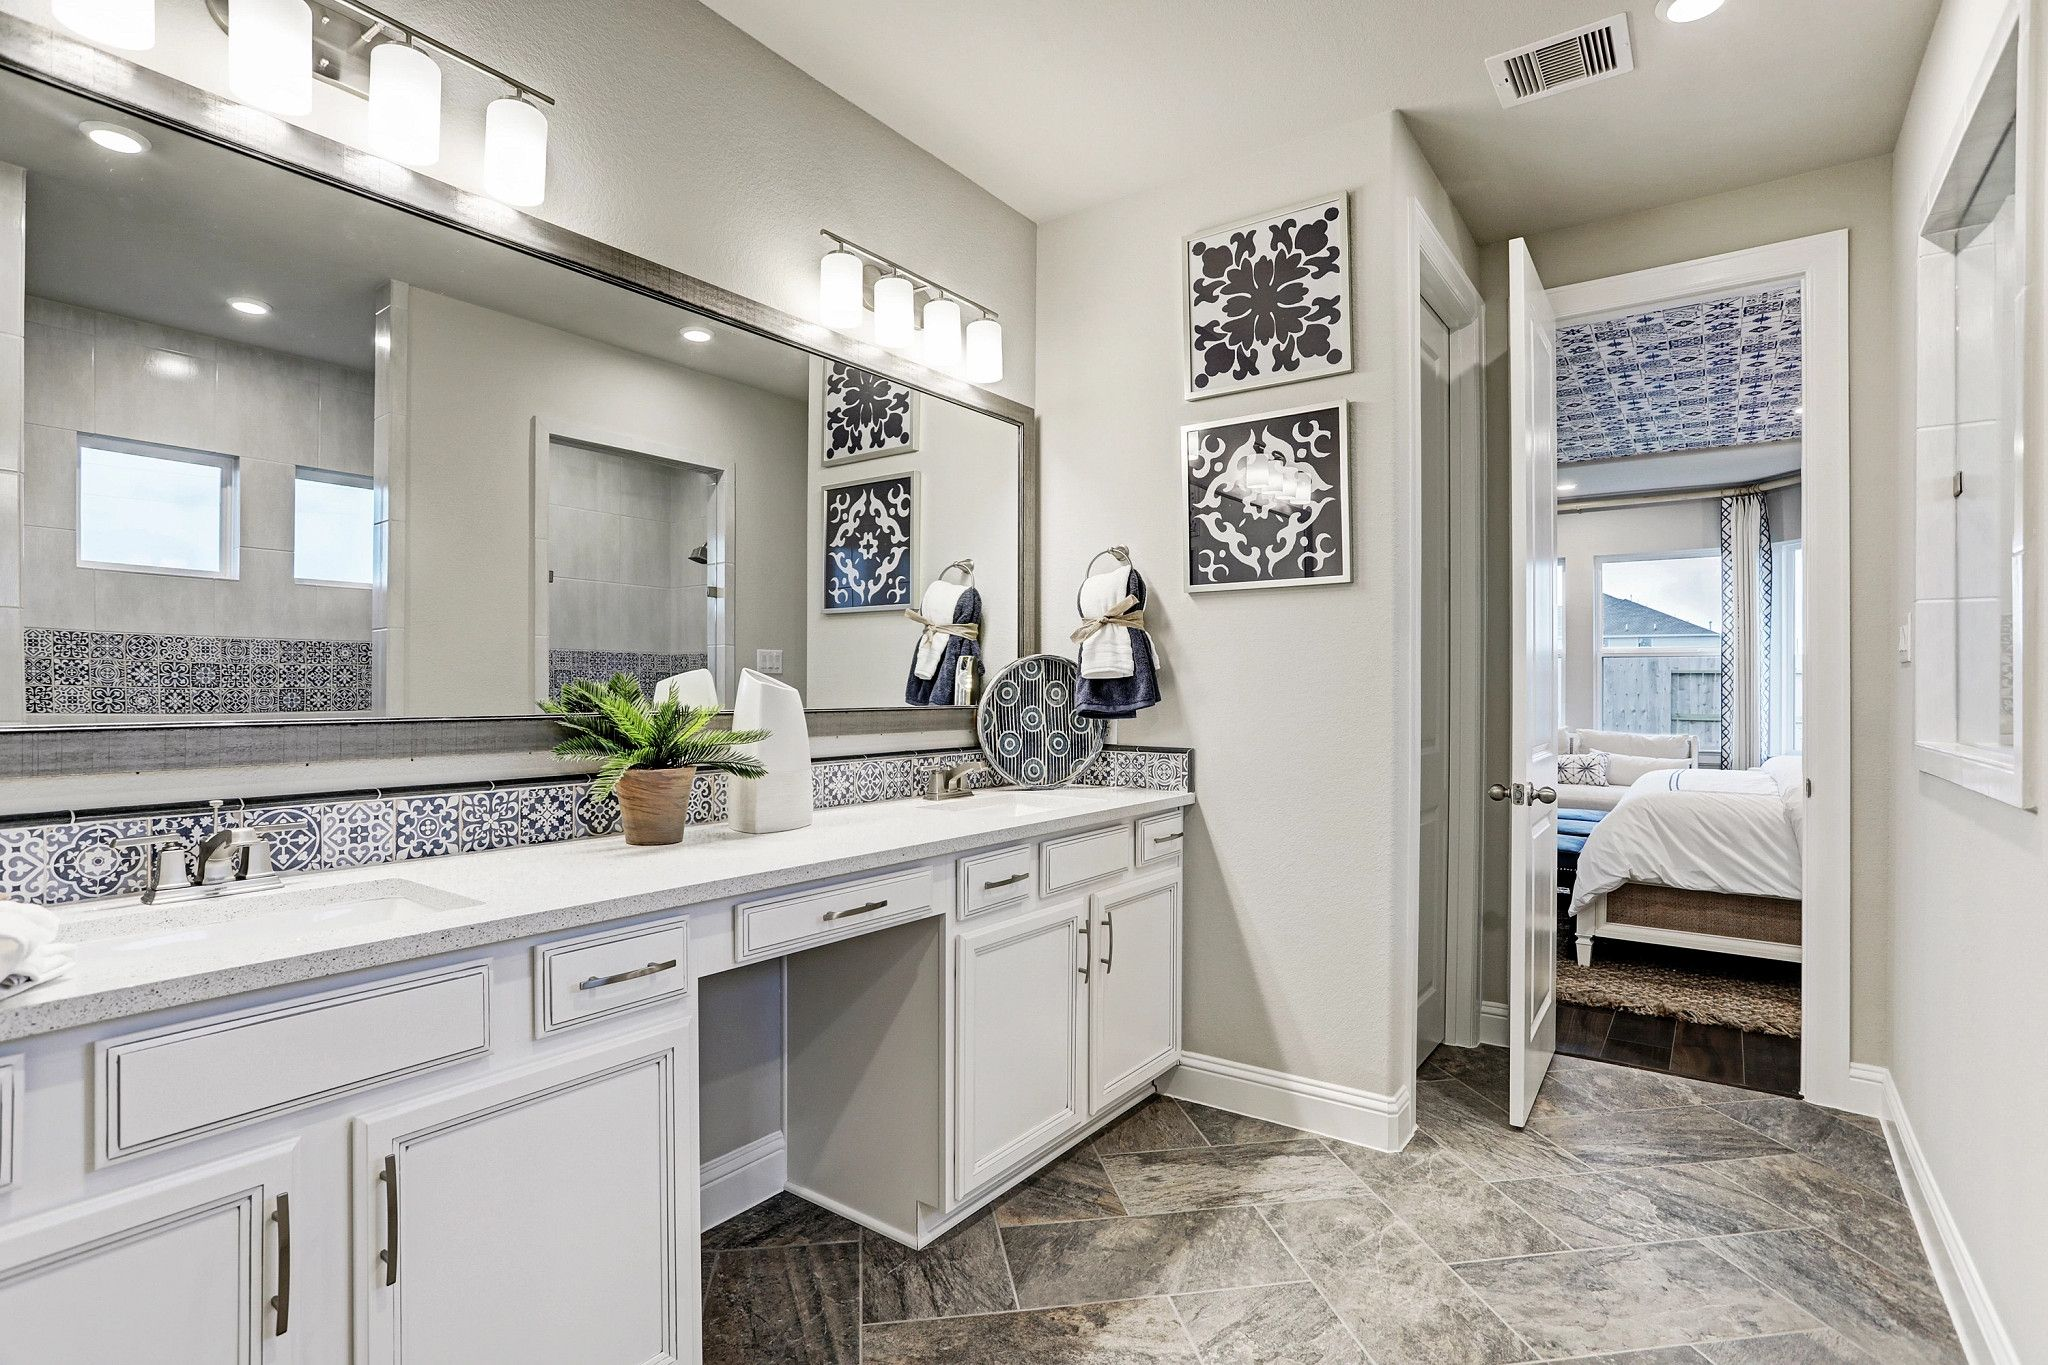 Bathroom featured in the Plan 5029 By Shea Homes in Houston, TX